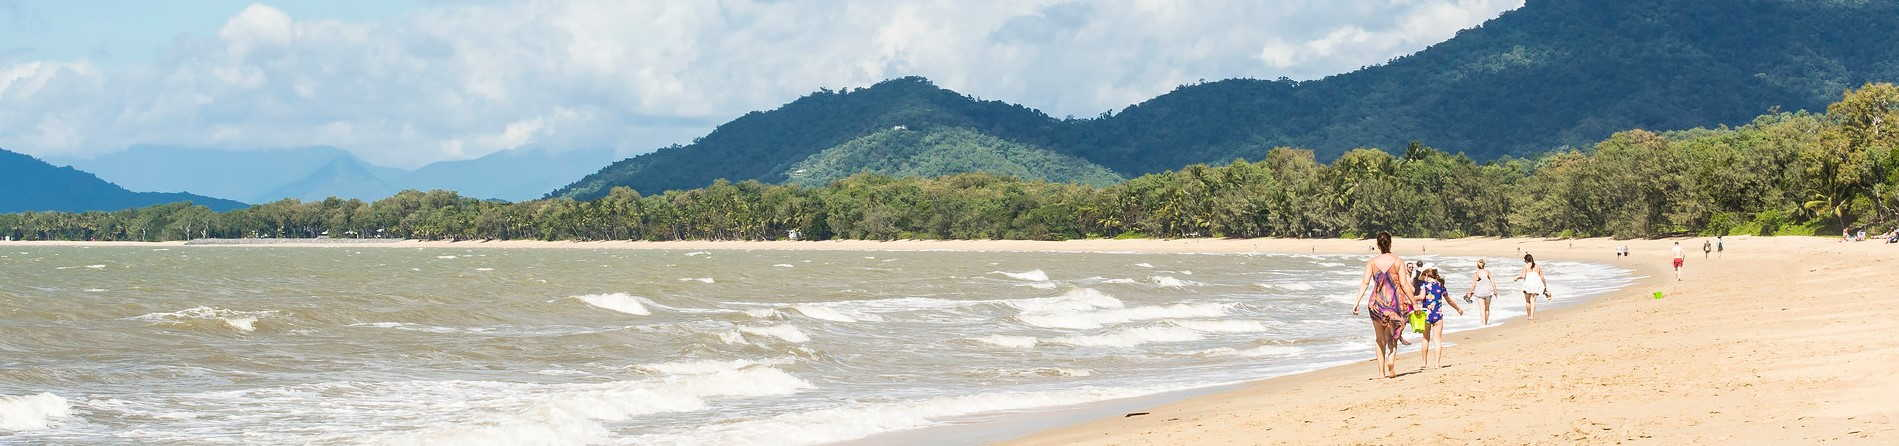 What can you enjoy in Cairns as a Family?